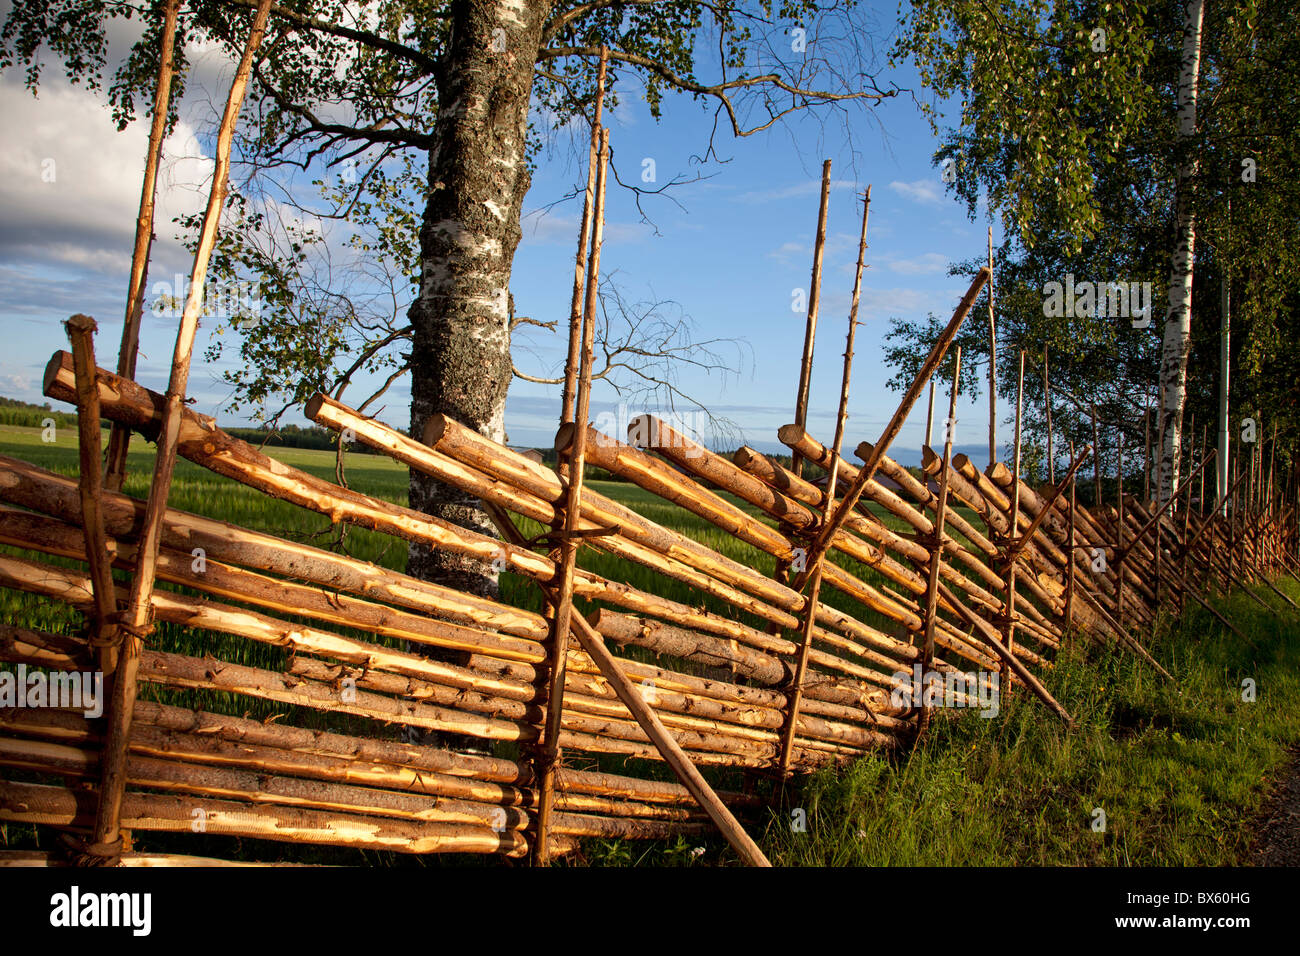 Traditional finnish wooden split rail or roundpole fence made of stock photo traditional finnish wooden split rail or roundpole fence made of wood laths finland baanklon Gallery